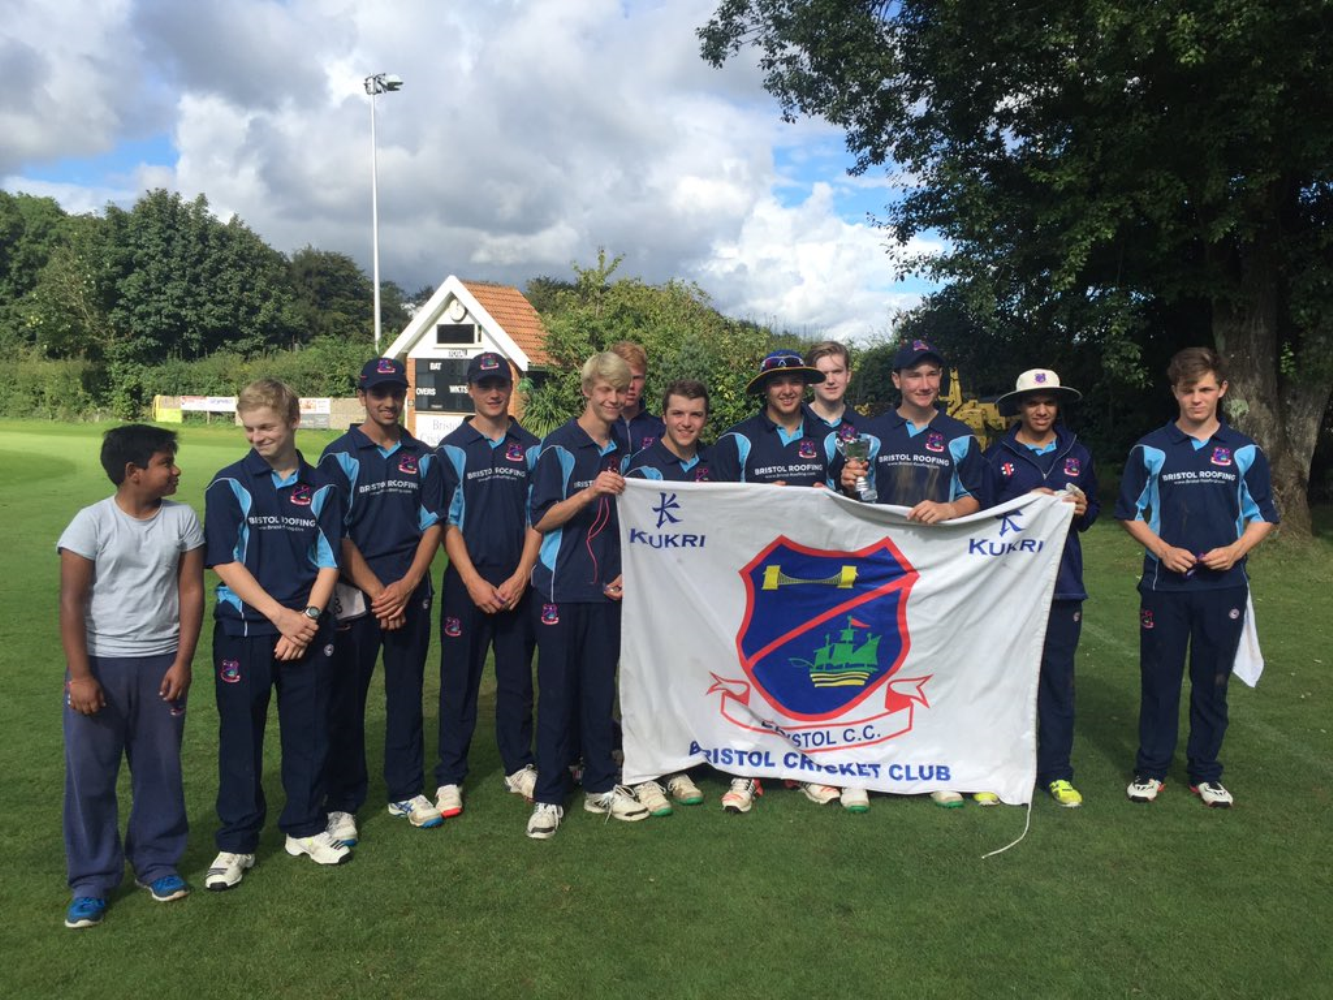 Bucaneers retain U19 T20 title with final win over Foxes